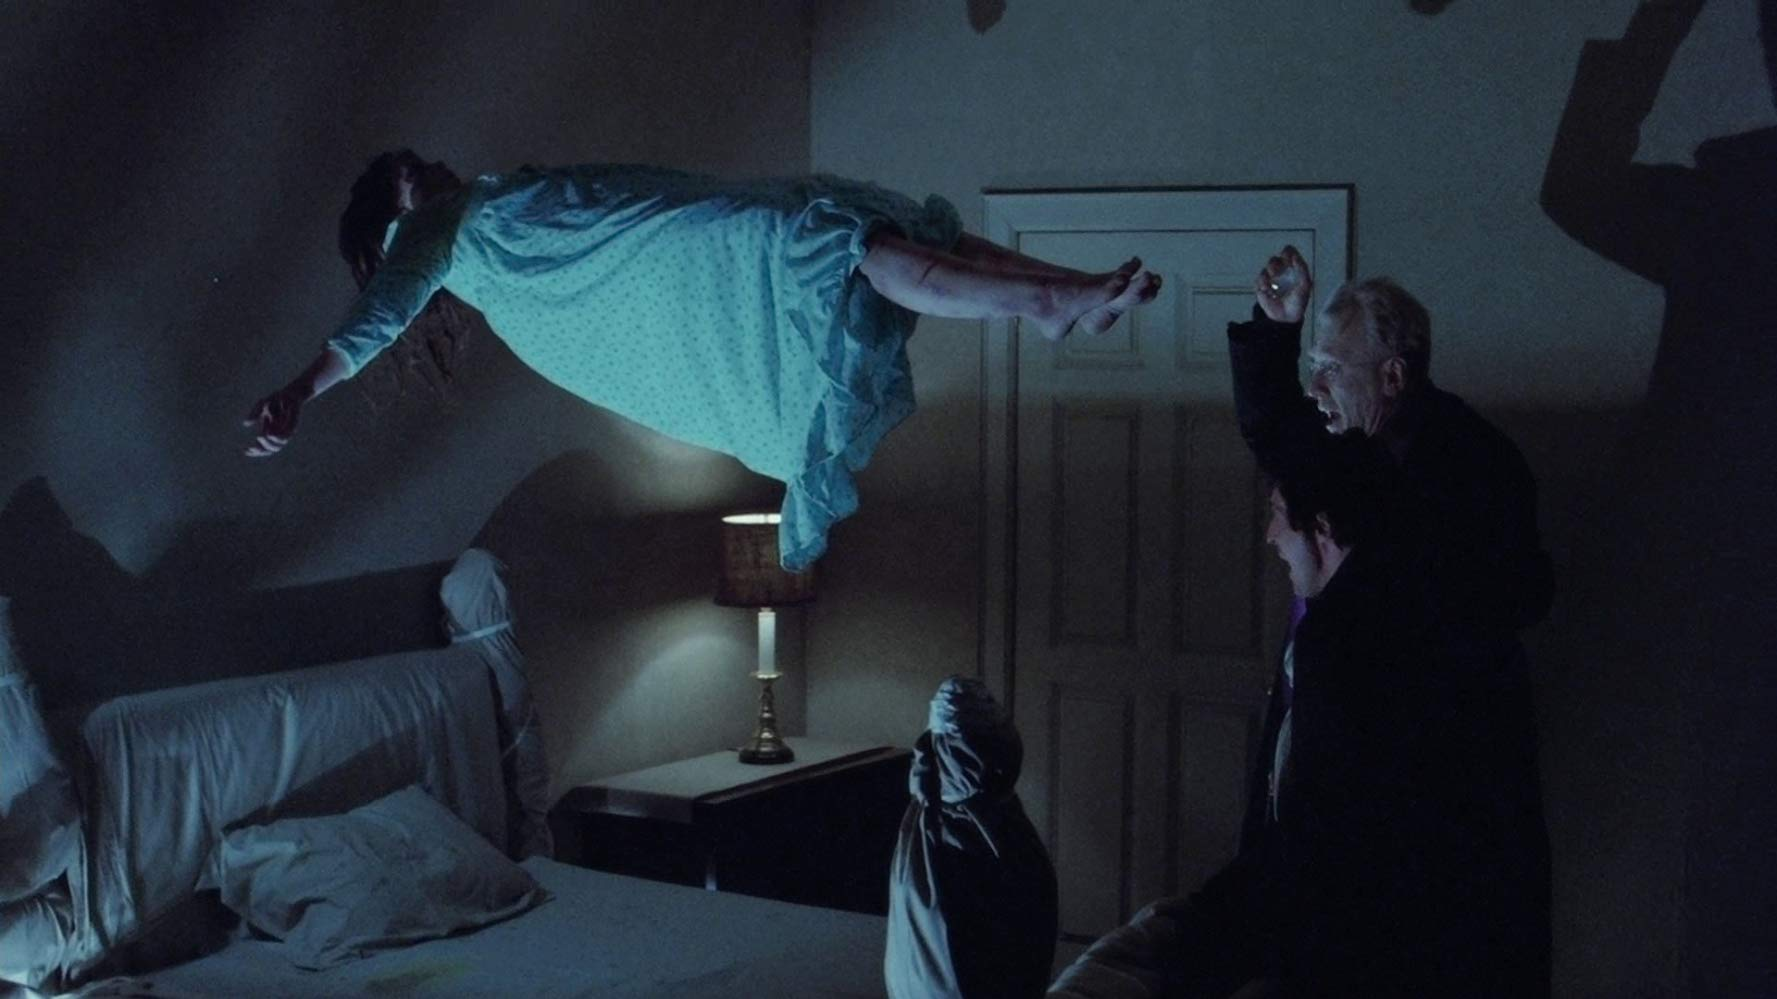 #11) The Exorcist - (1973 - dir. William Friedkin)